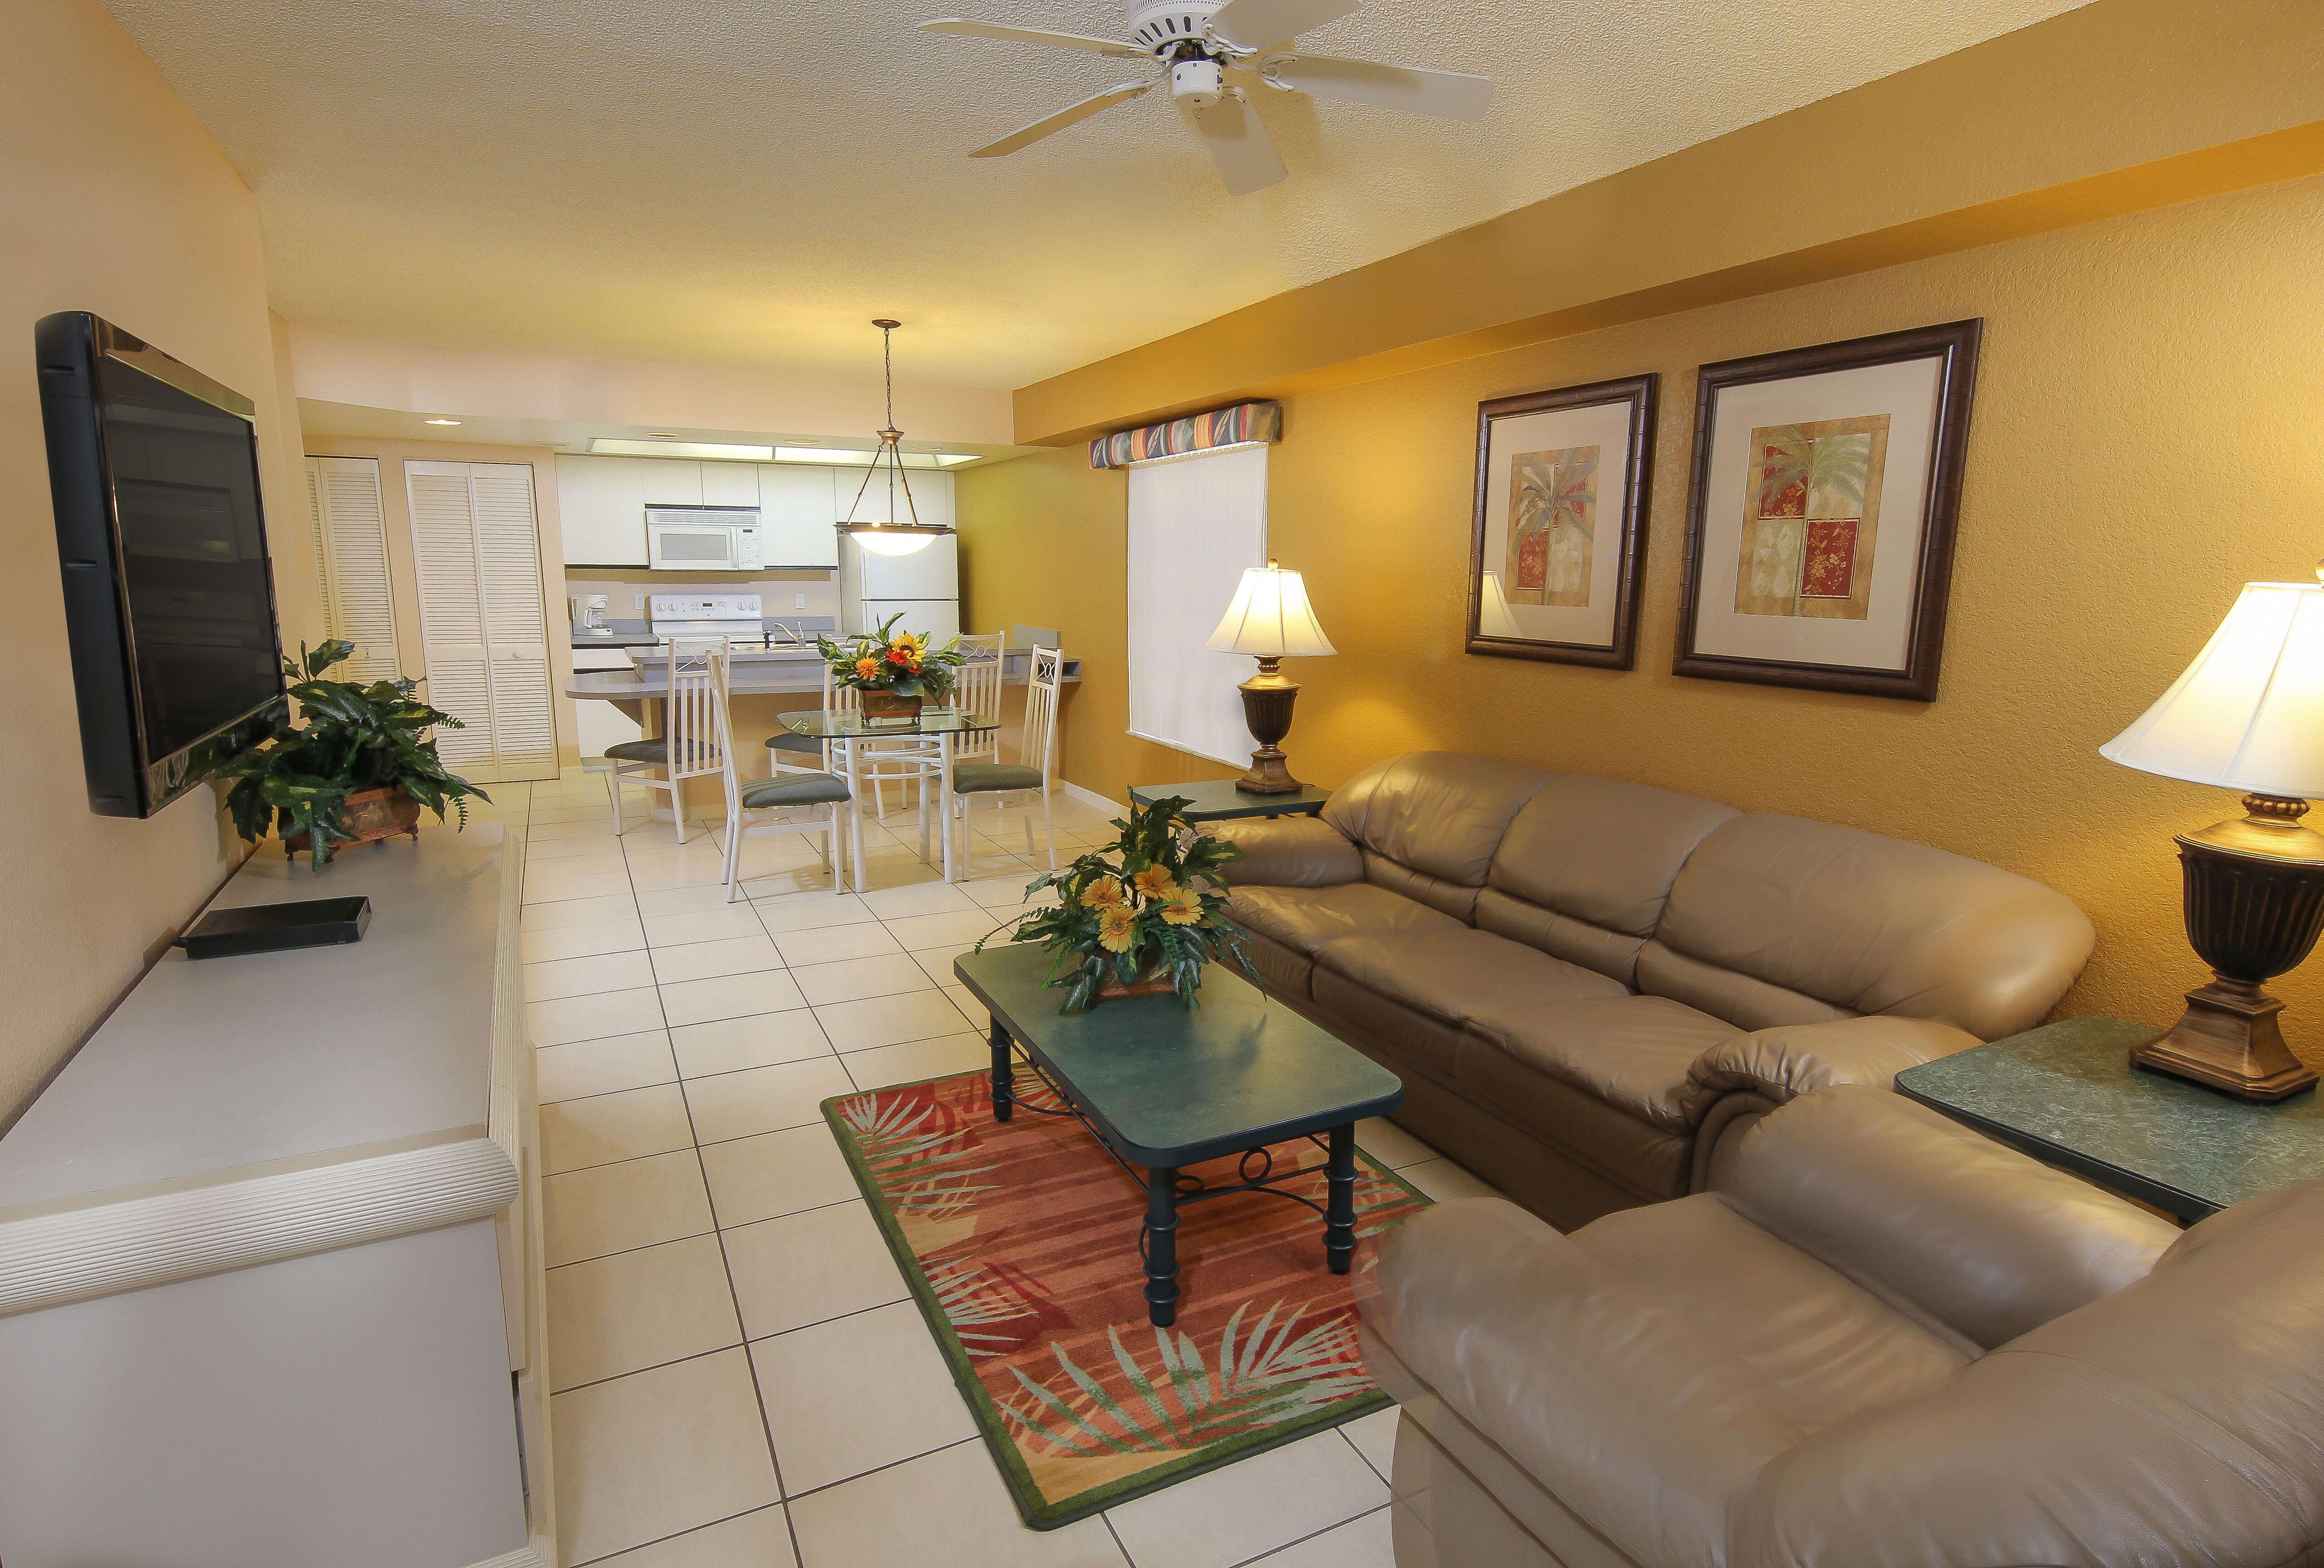 two-bedroom villa | westgate vacation villas resort & spa orlando